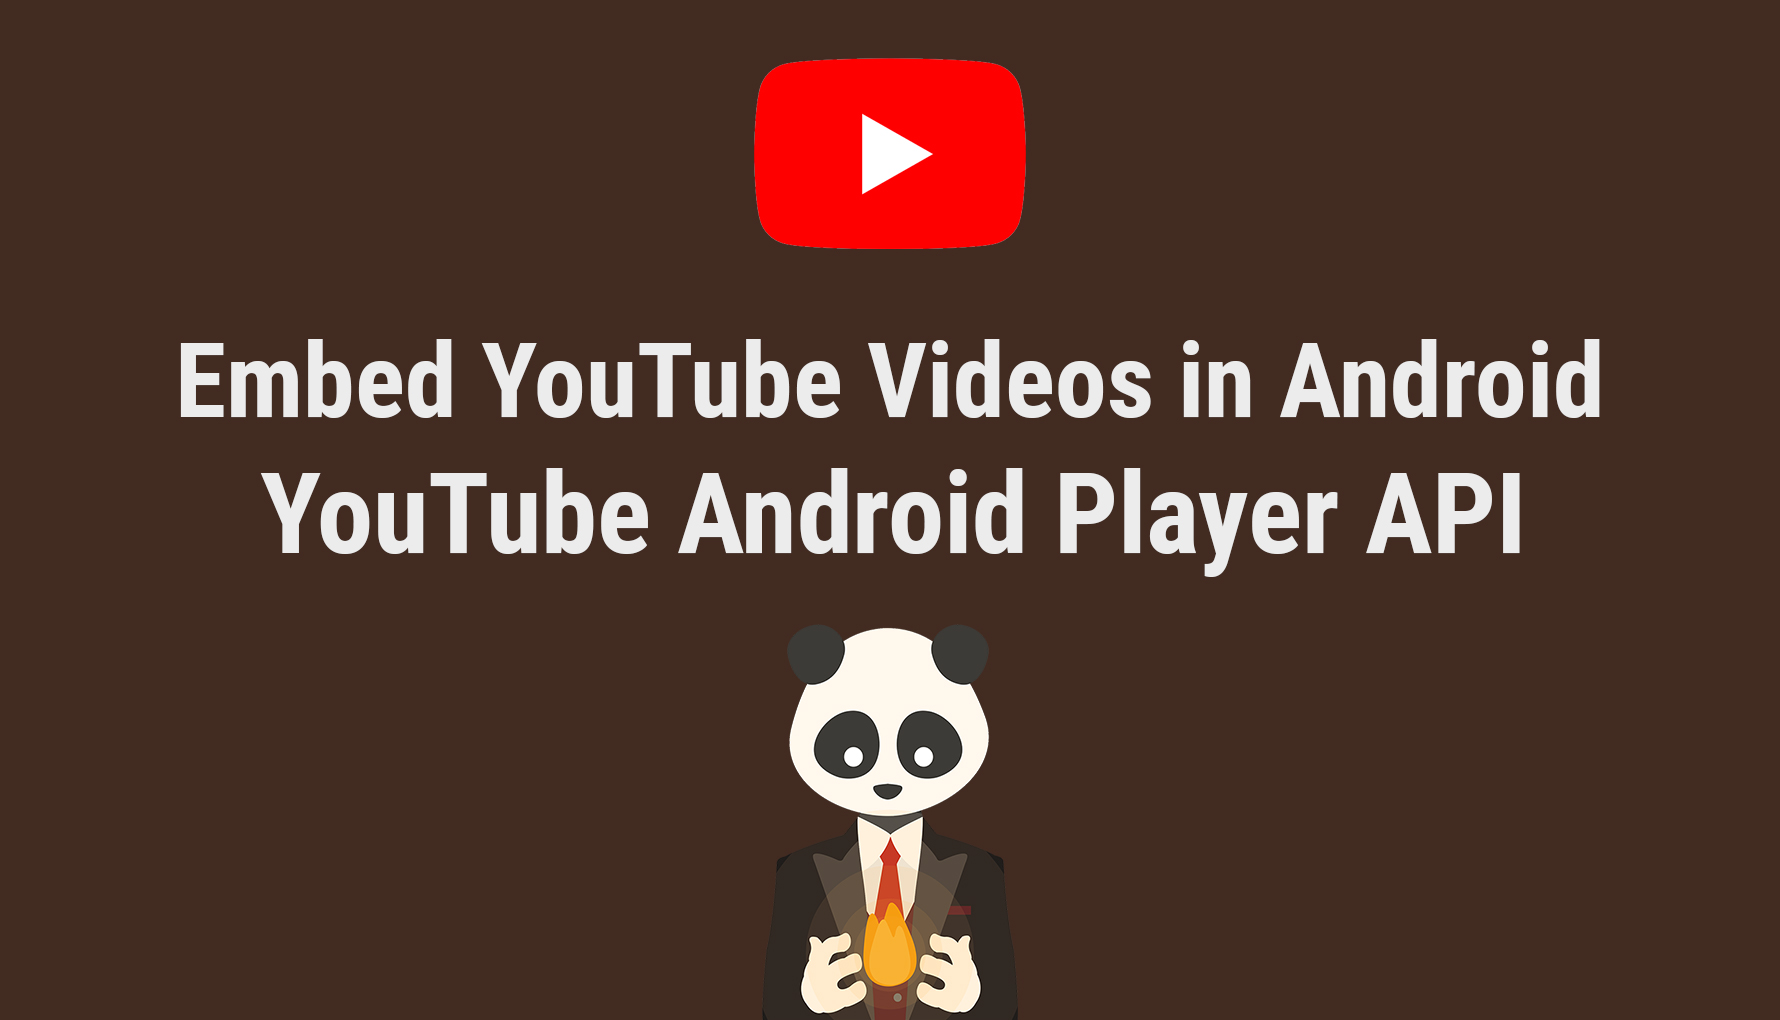 Embed YouTube Videos in Android with YouTube Android Player API